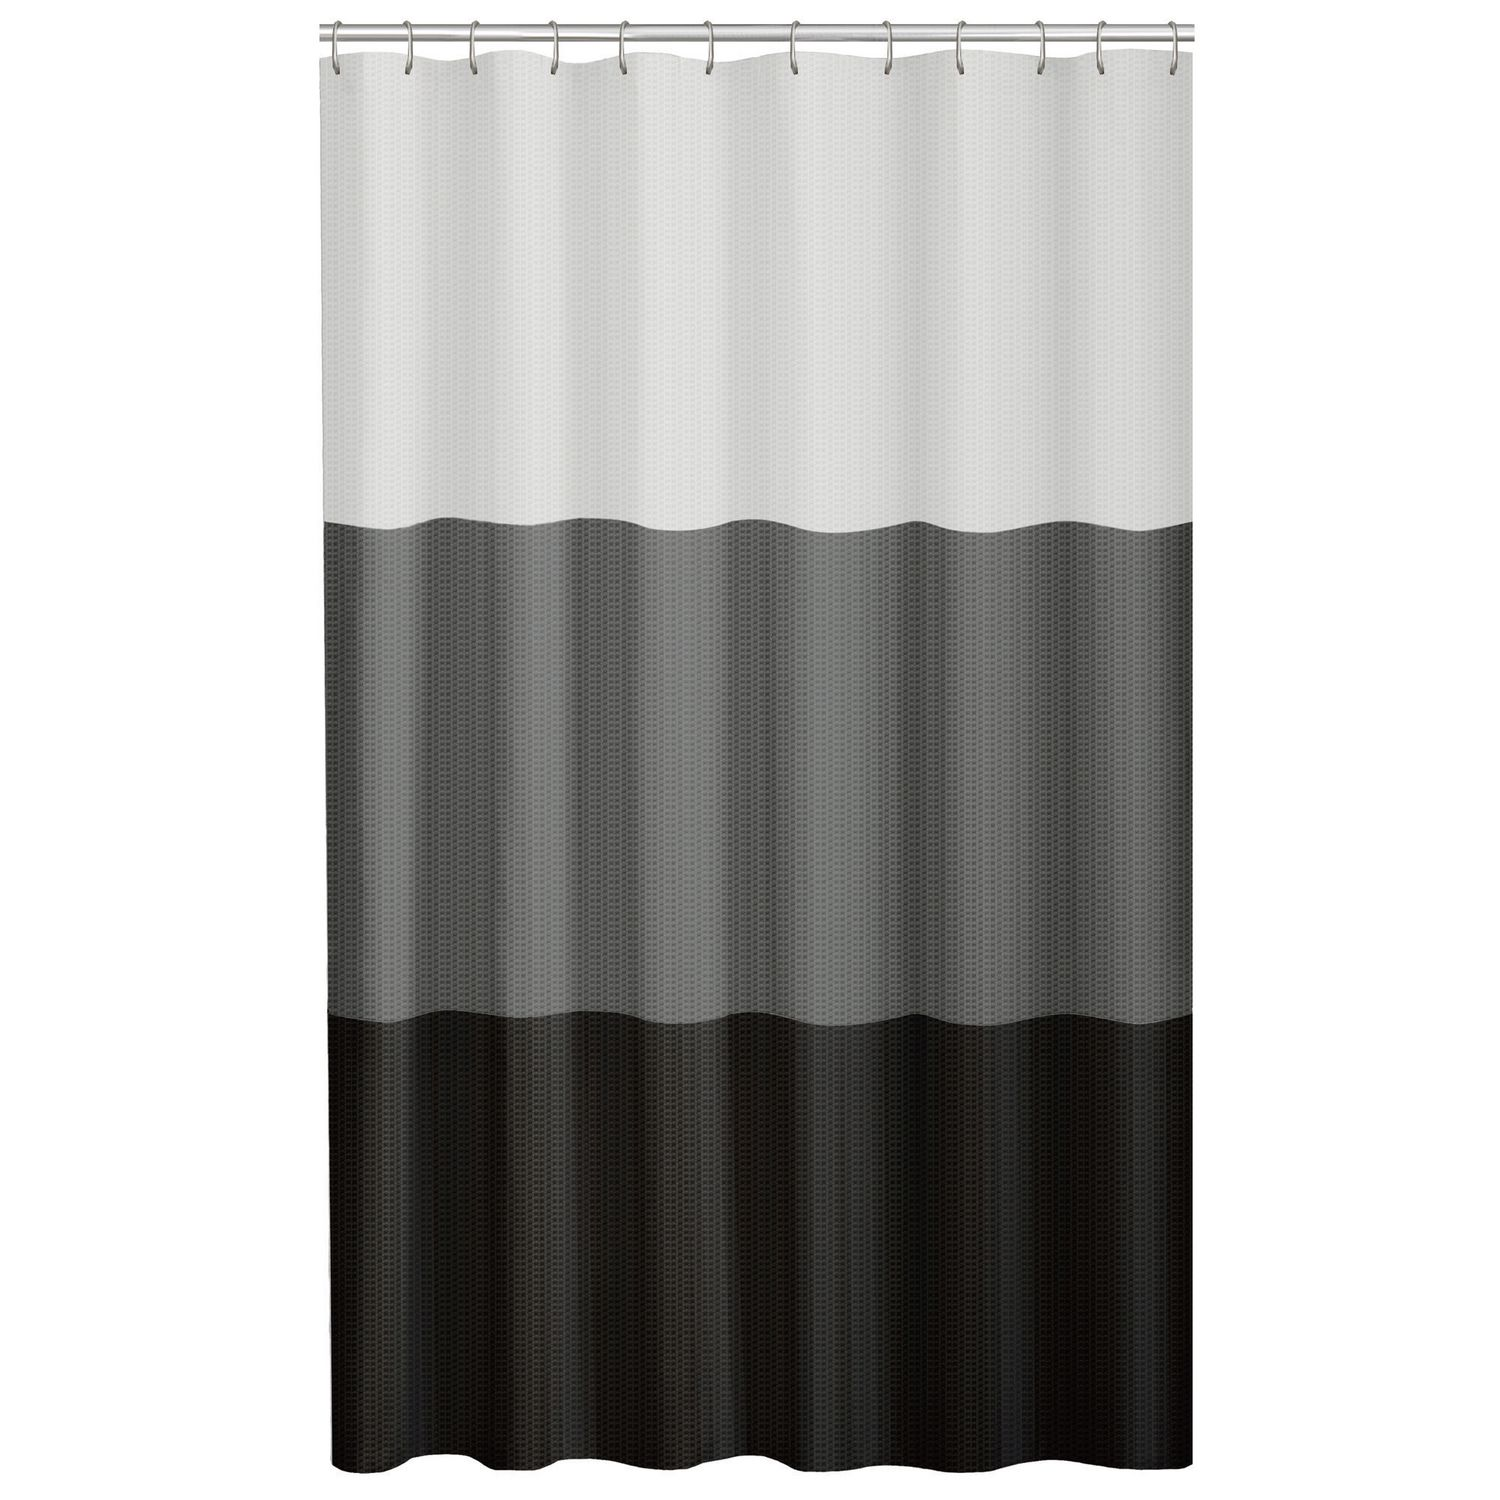 bath cotton shipping bedding natural shower overstock free linen product today gray curtain